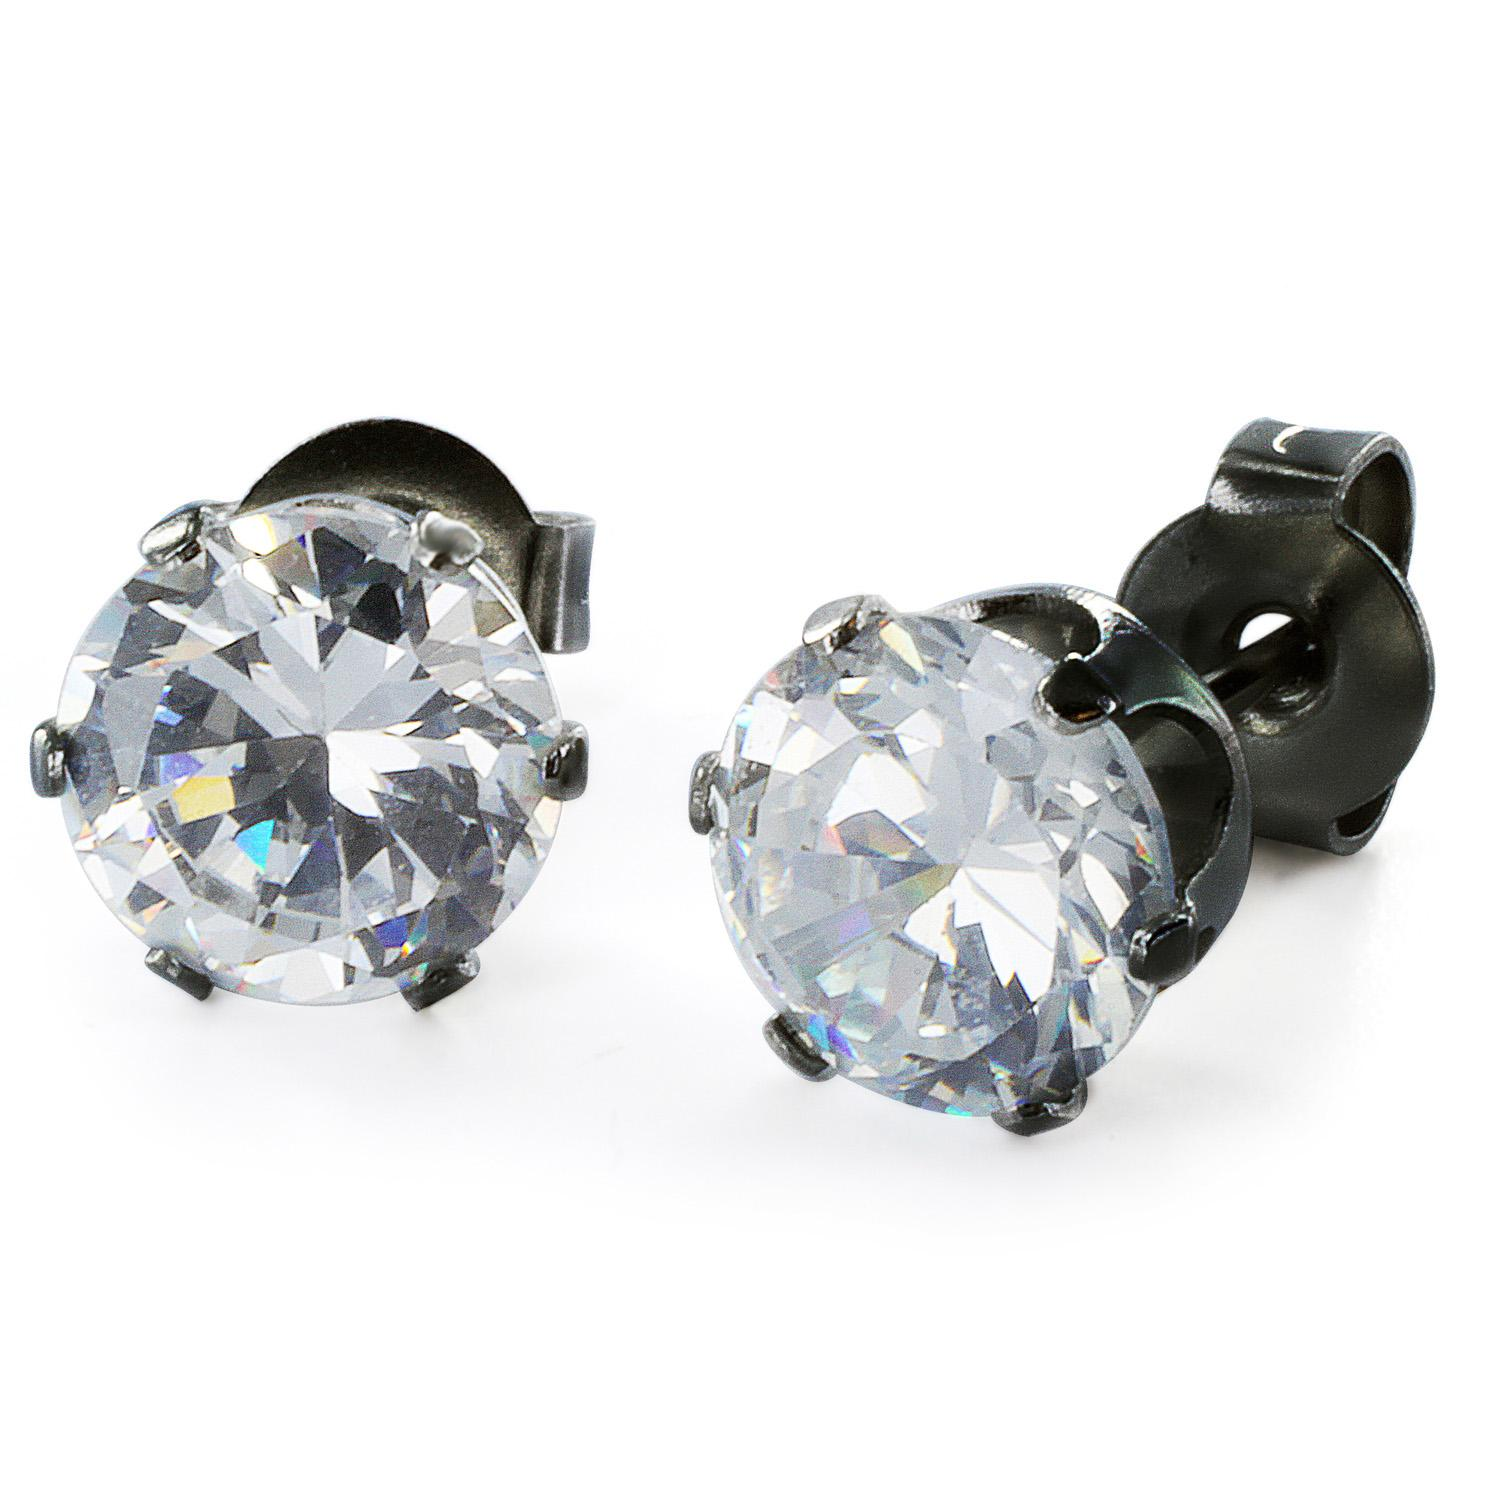 Black Plated Stainless Steel Stud Earrings with Round Clear CZ - 7 mm